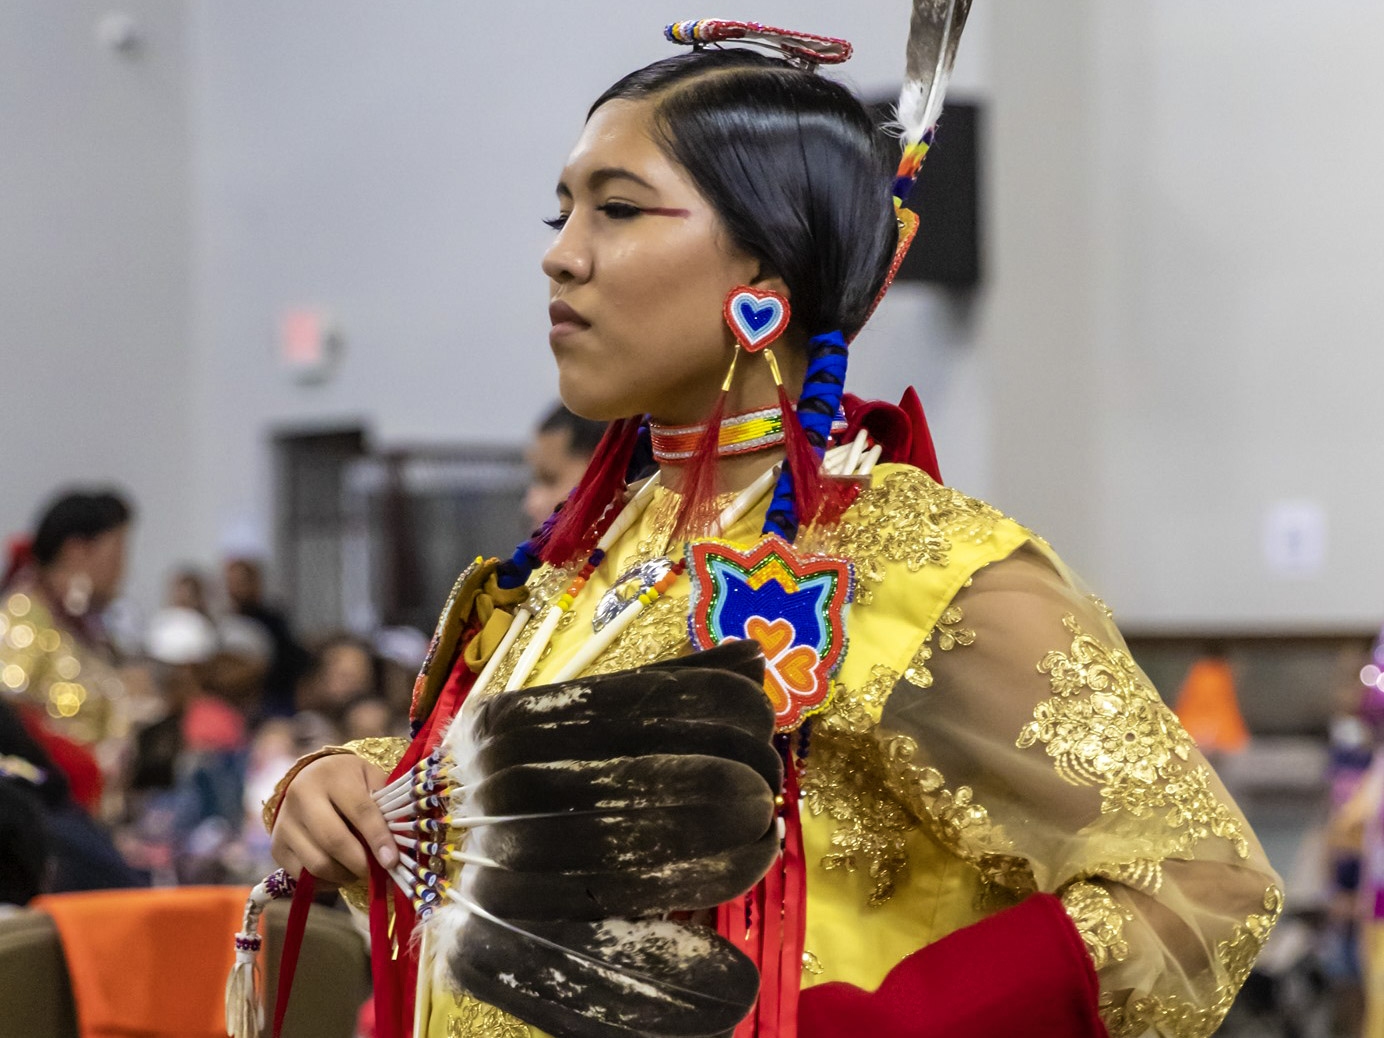 'Keeping the culture alive': Native dance goes digital during pandemic